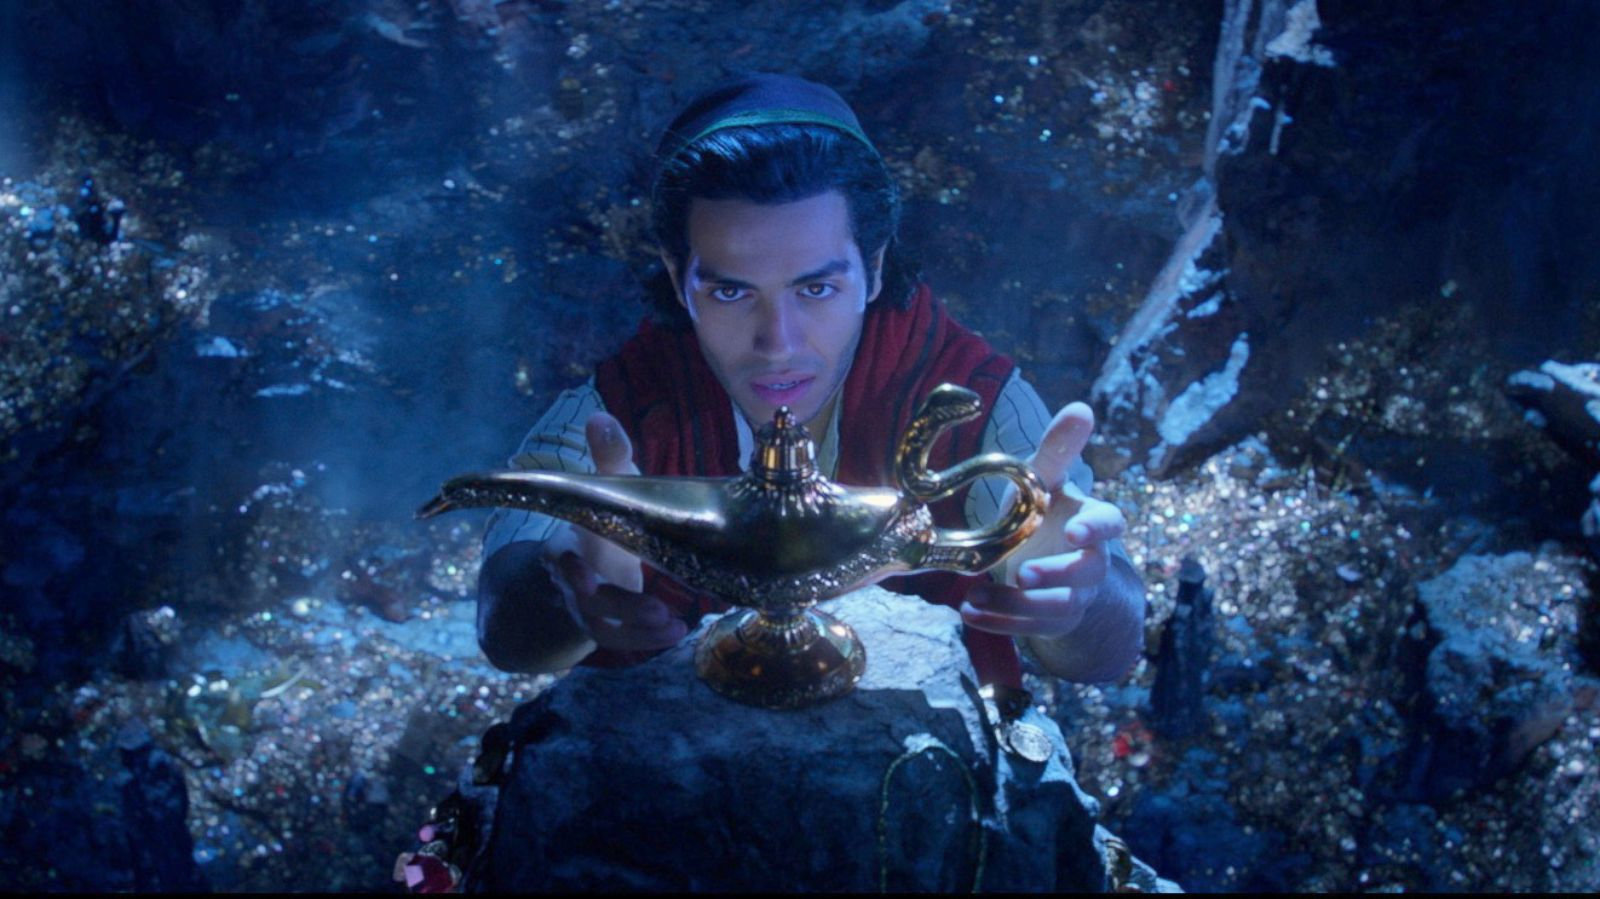 disney-aladdin-film-still-ht-jc-190311_hpMain_16x9_1600